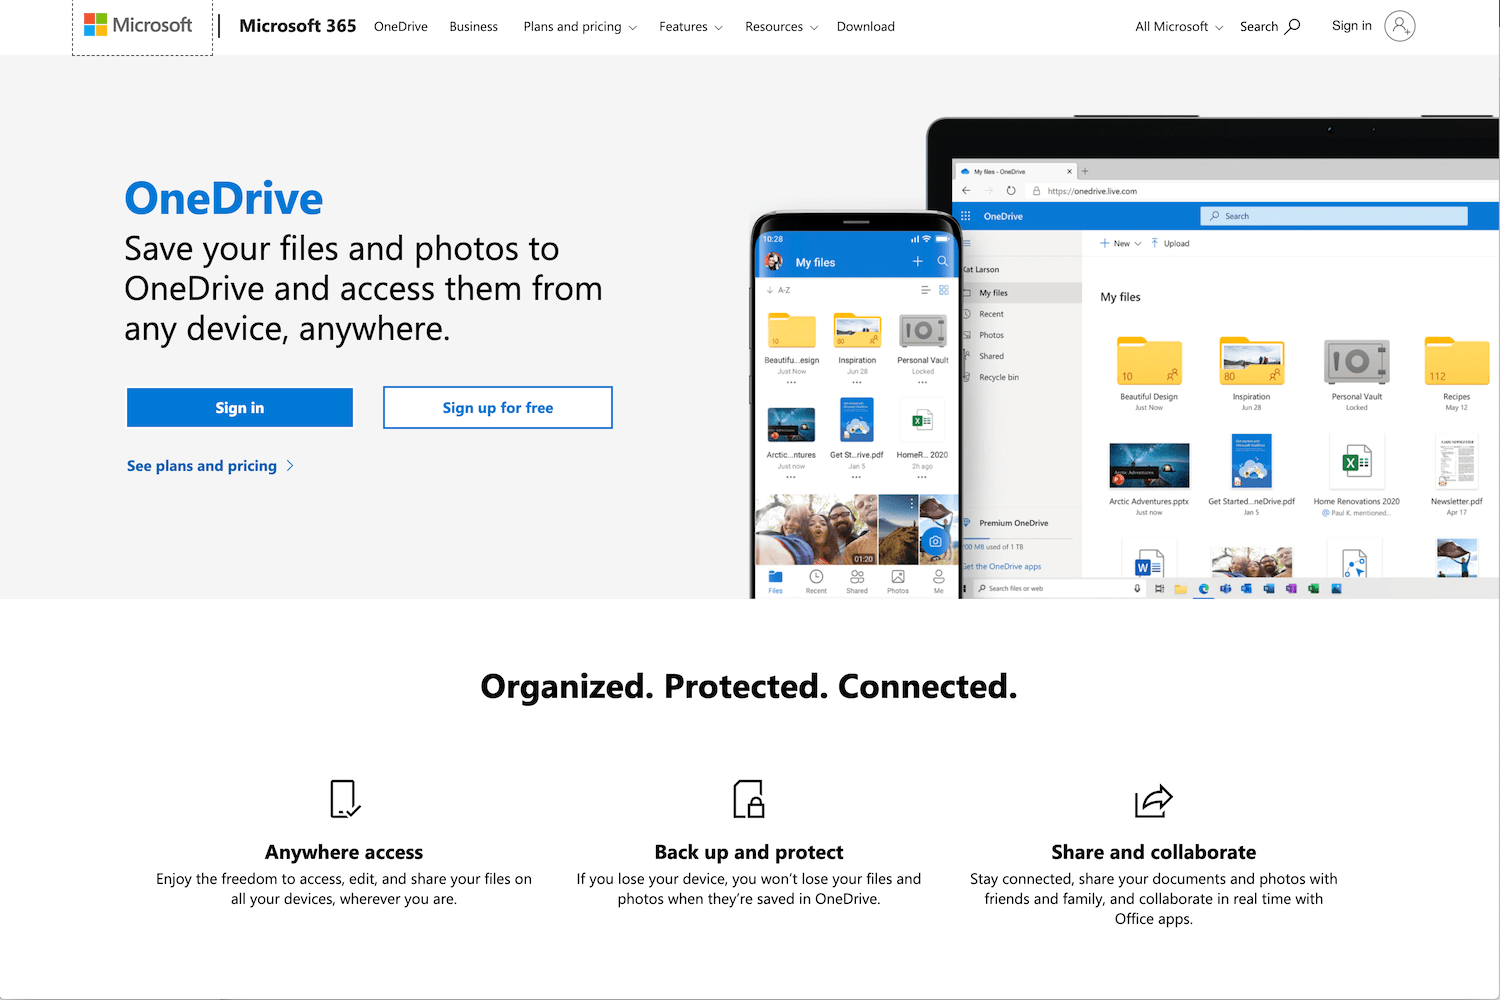 Best Online Photo Storage Microsoft OneDrive